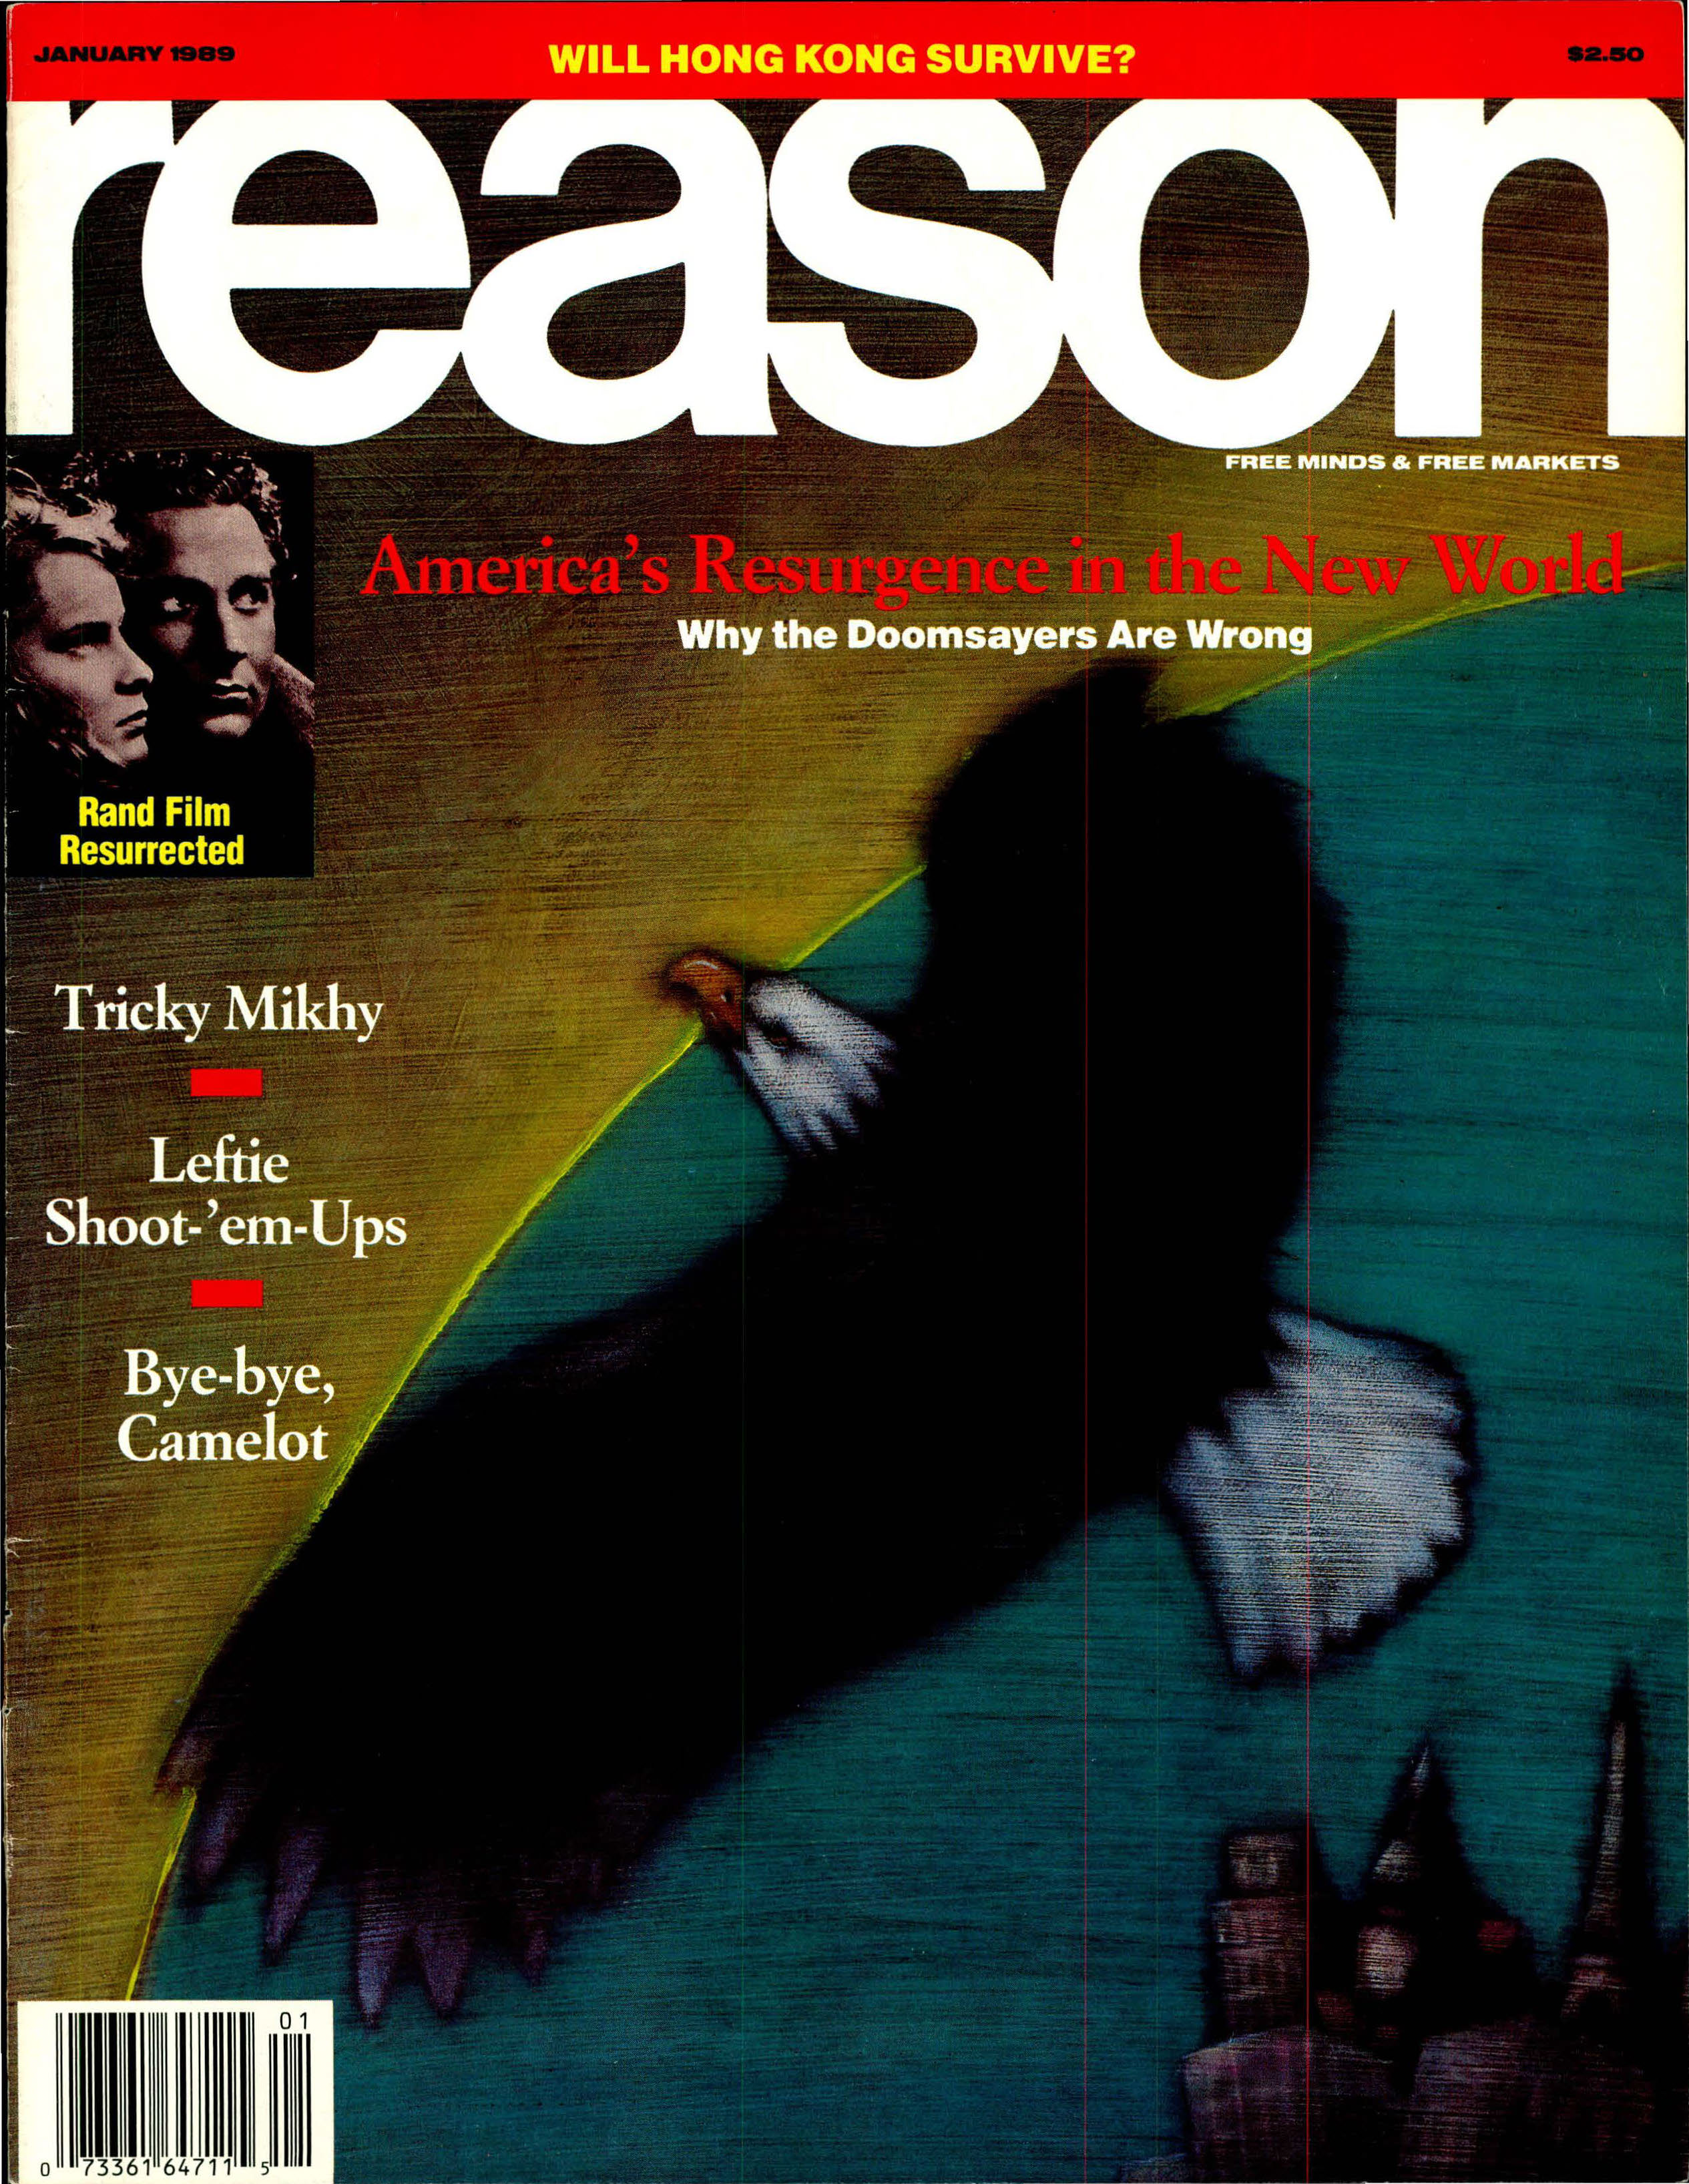 Reason Magazine, January 1989 cover image